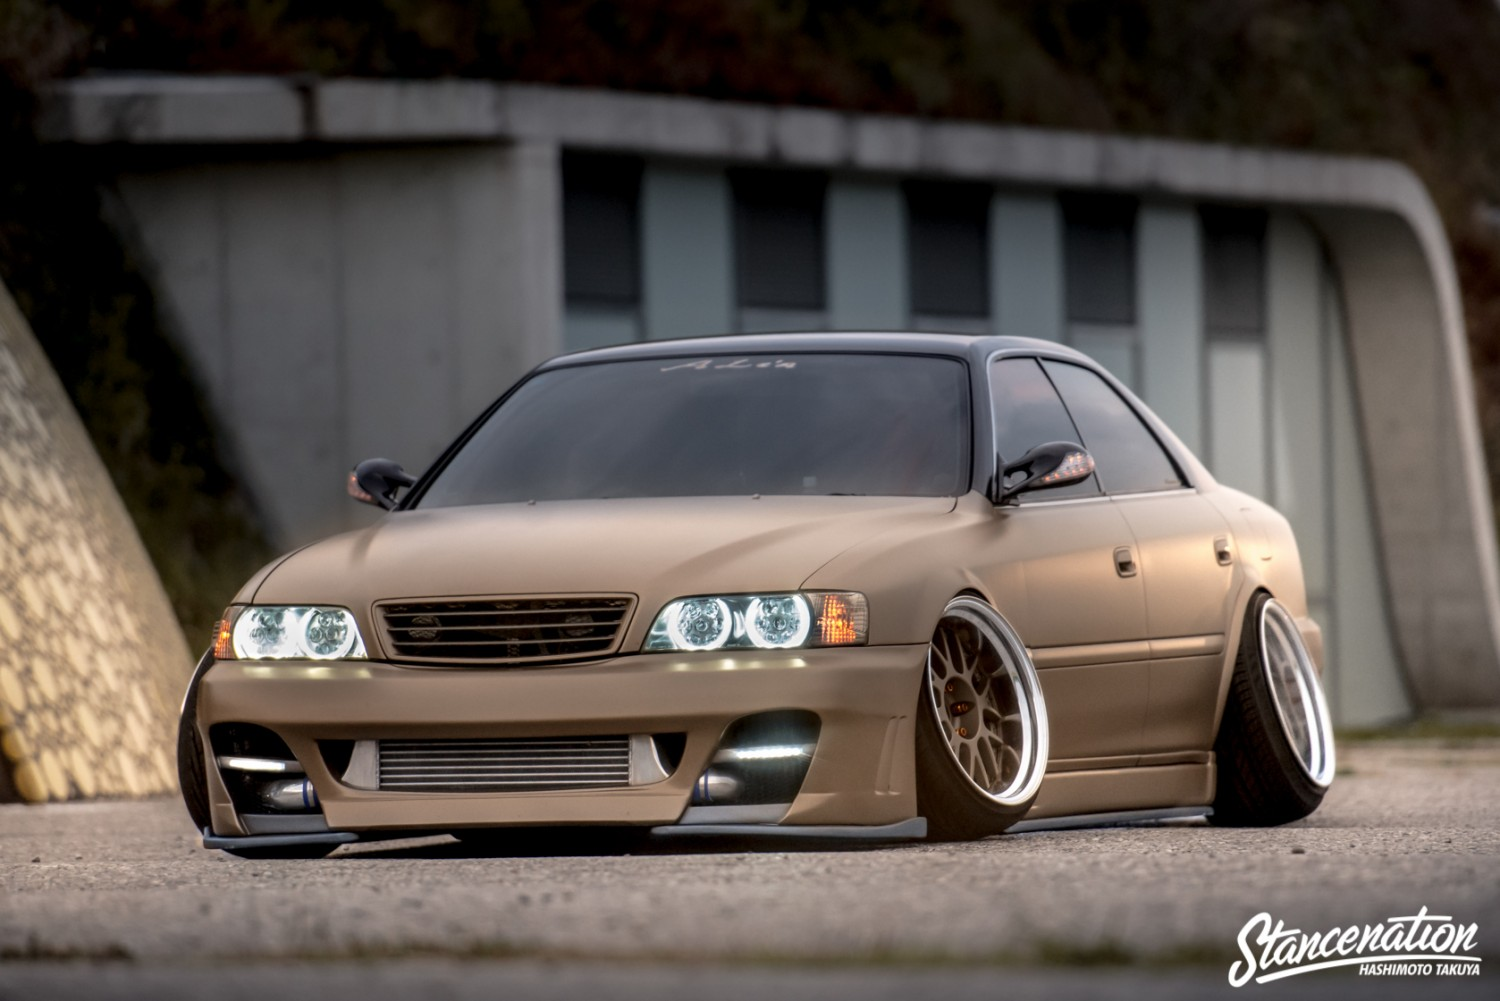 Who Owns Volvo >> A Street Car Named Desire // Ryo's Toyota Chaser ...